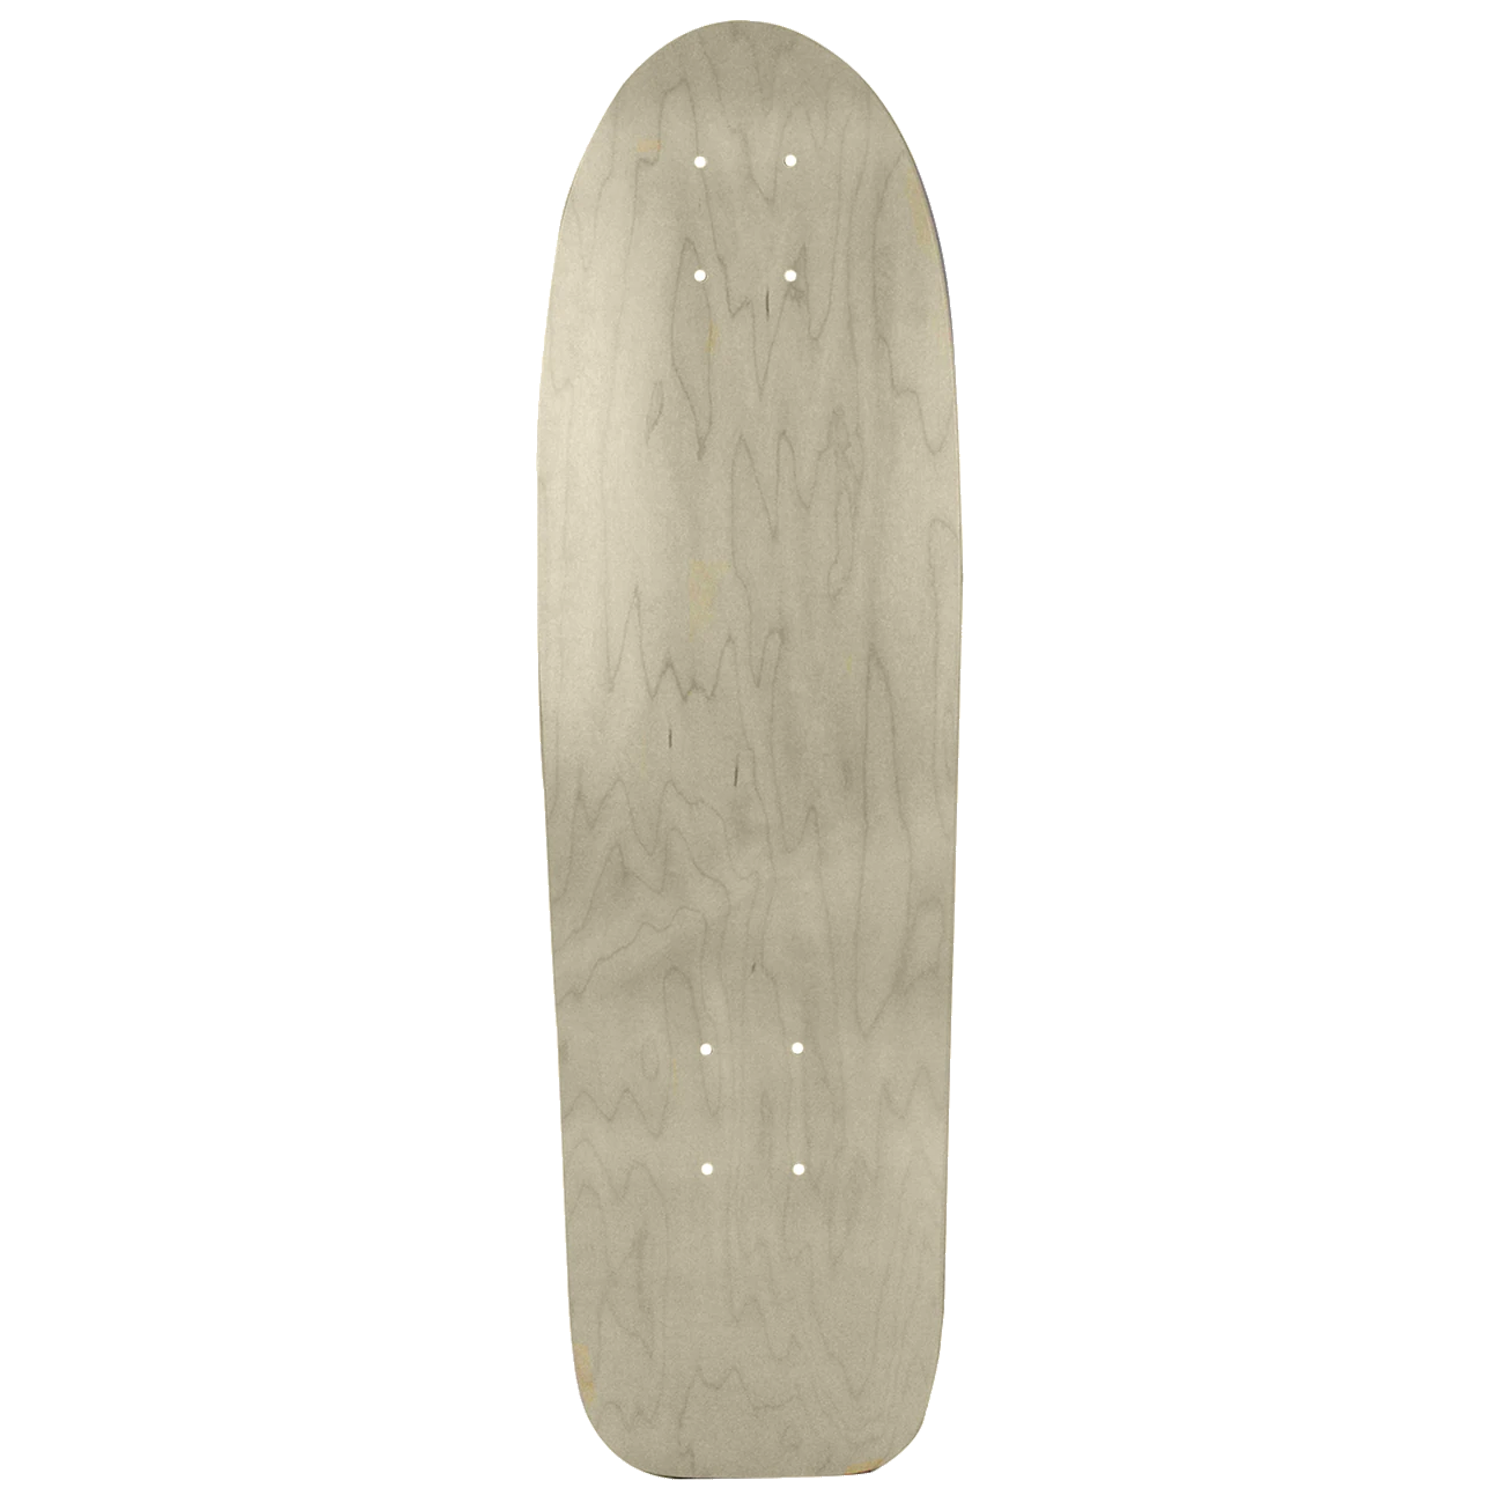 Moose Skateboard Cruise Deck Canadian Made Natural 8in x 27in